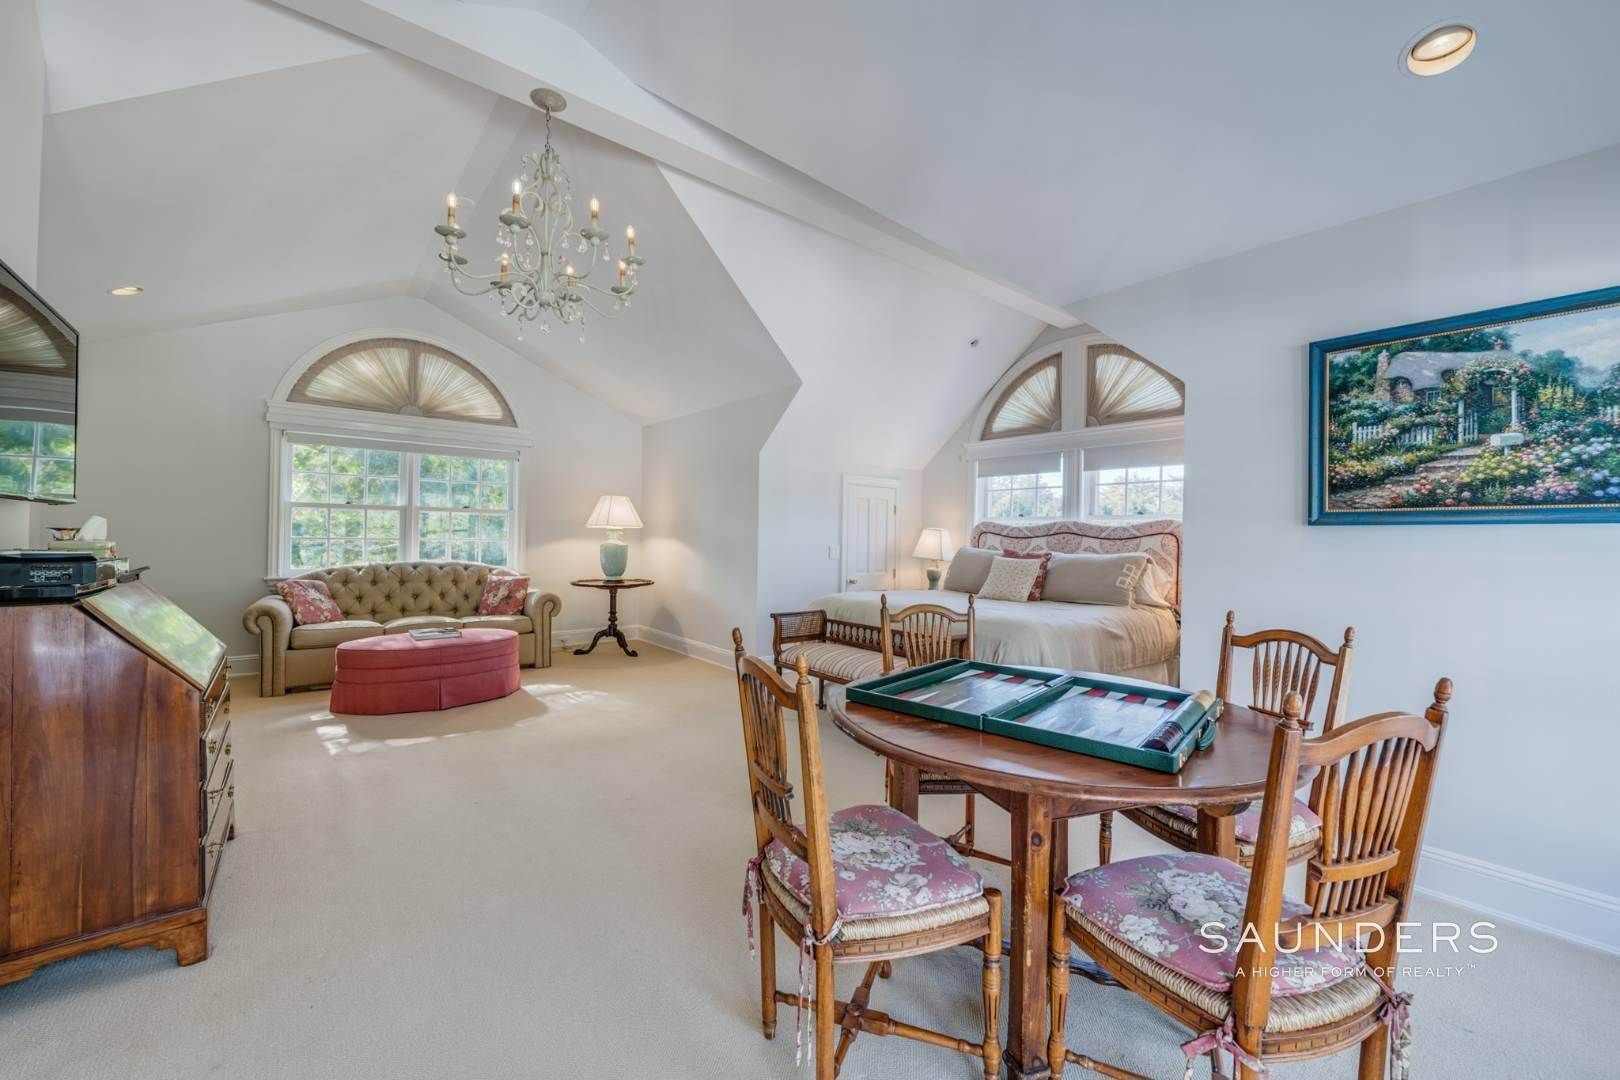 26. Single Family Homes for Sale at Classic Elegance In The Heart Of Quogue Village 68 Quogue Street, Quogue Village, Southampton Town, NY 11959